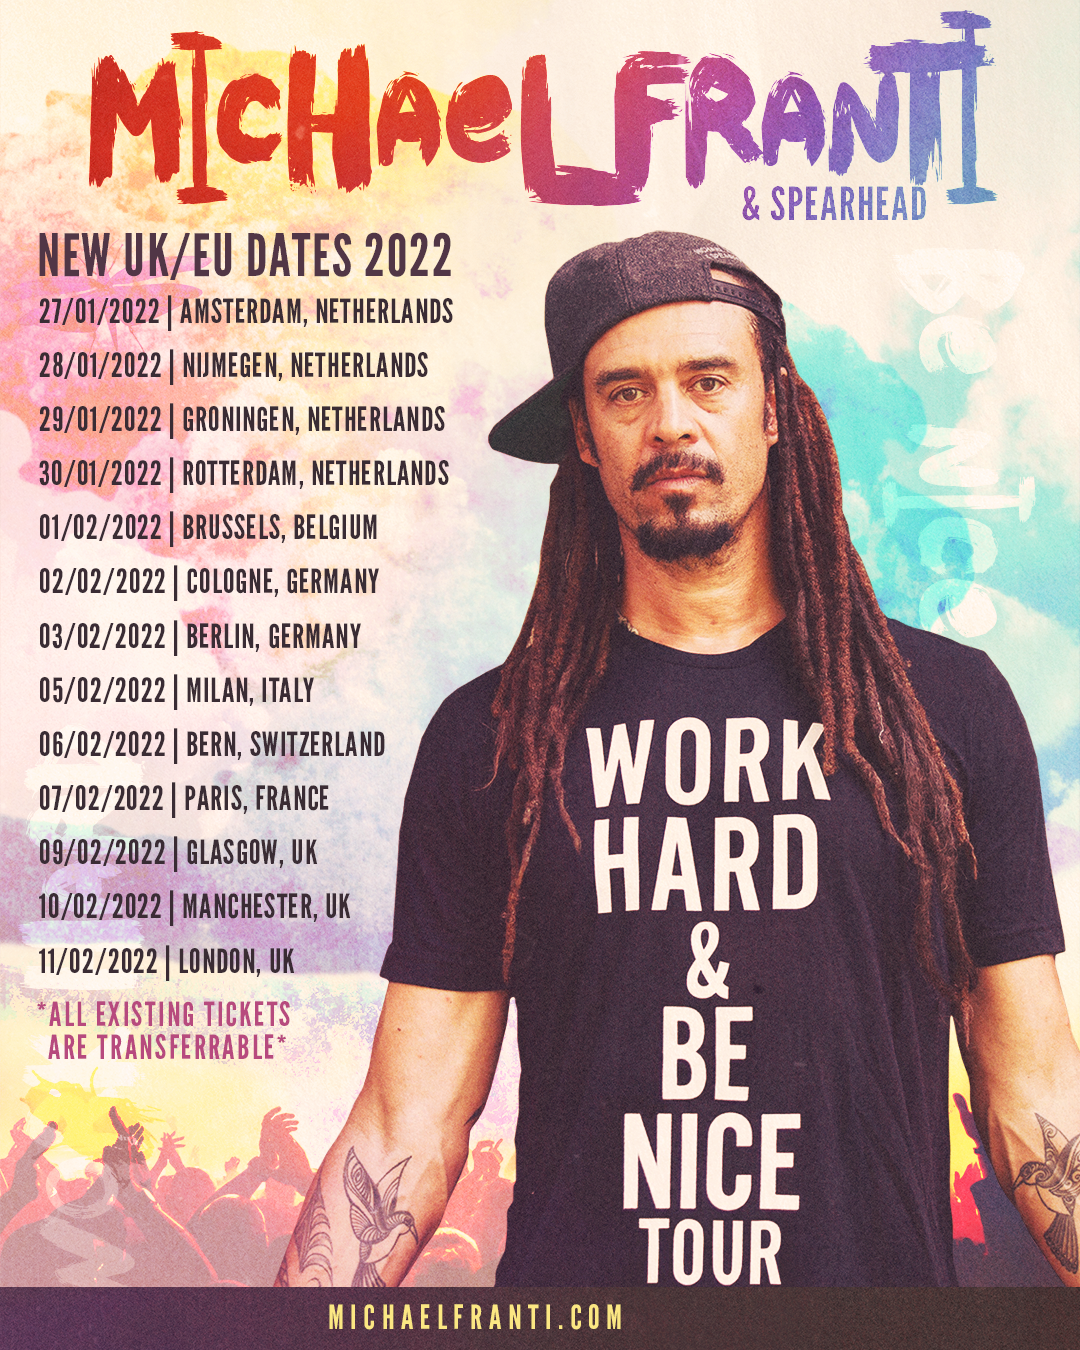 Updated 2022 UK/EU Tour Dates